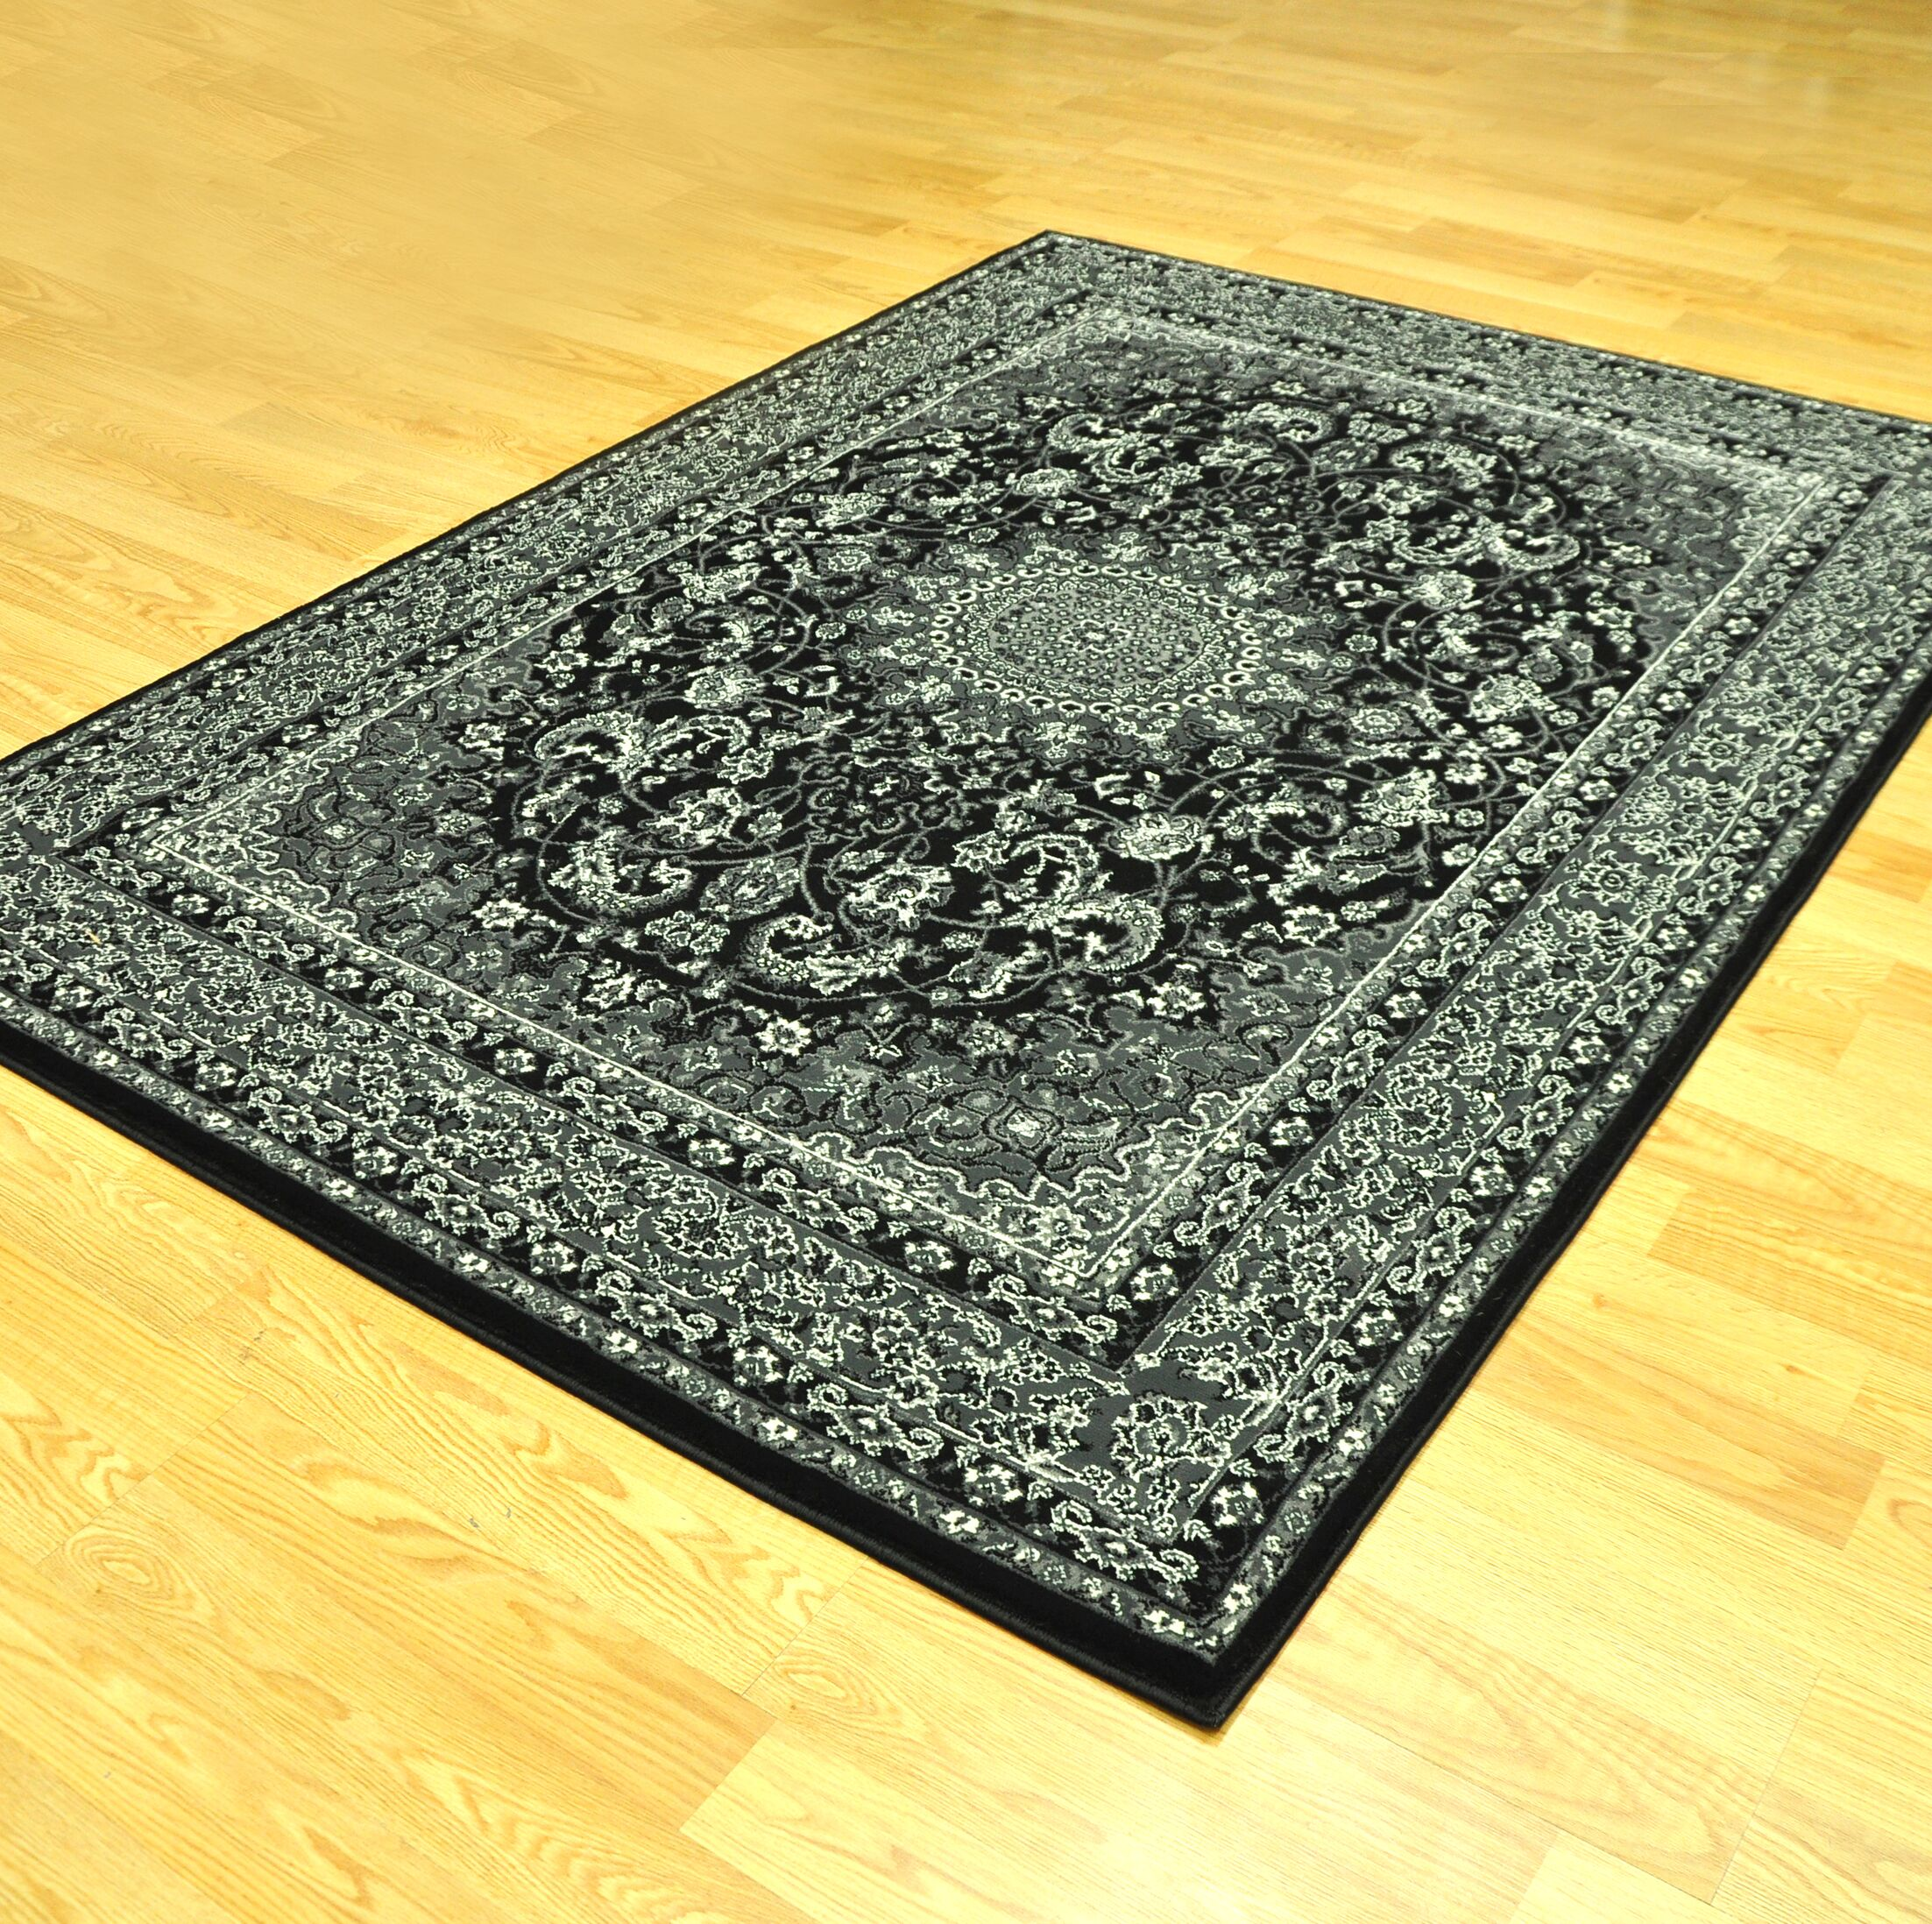 Zoel Traditional Stain Resistant Black/Gray Oriental Area Rug Rug Size: Runner 2'7